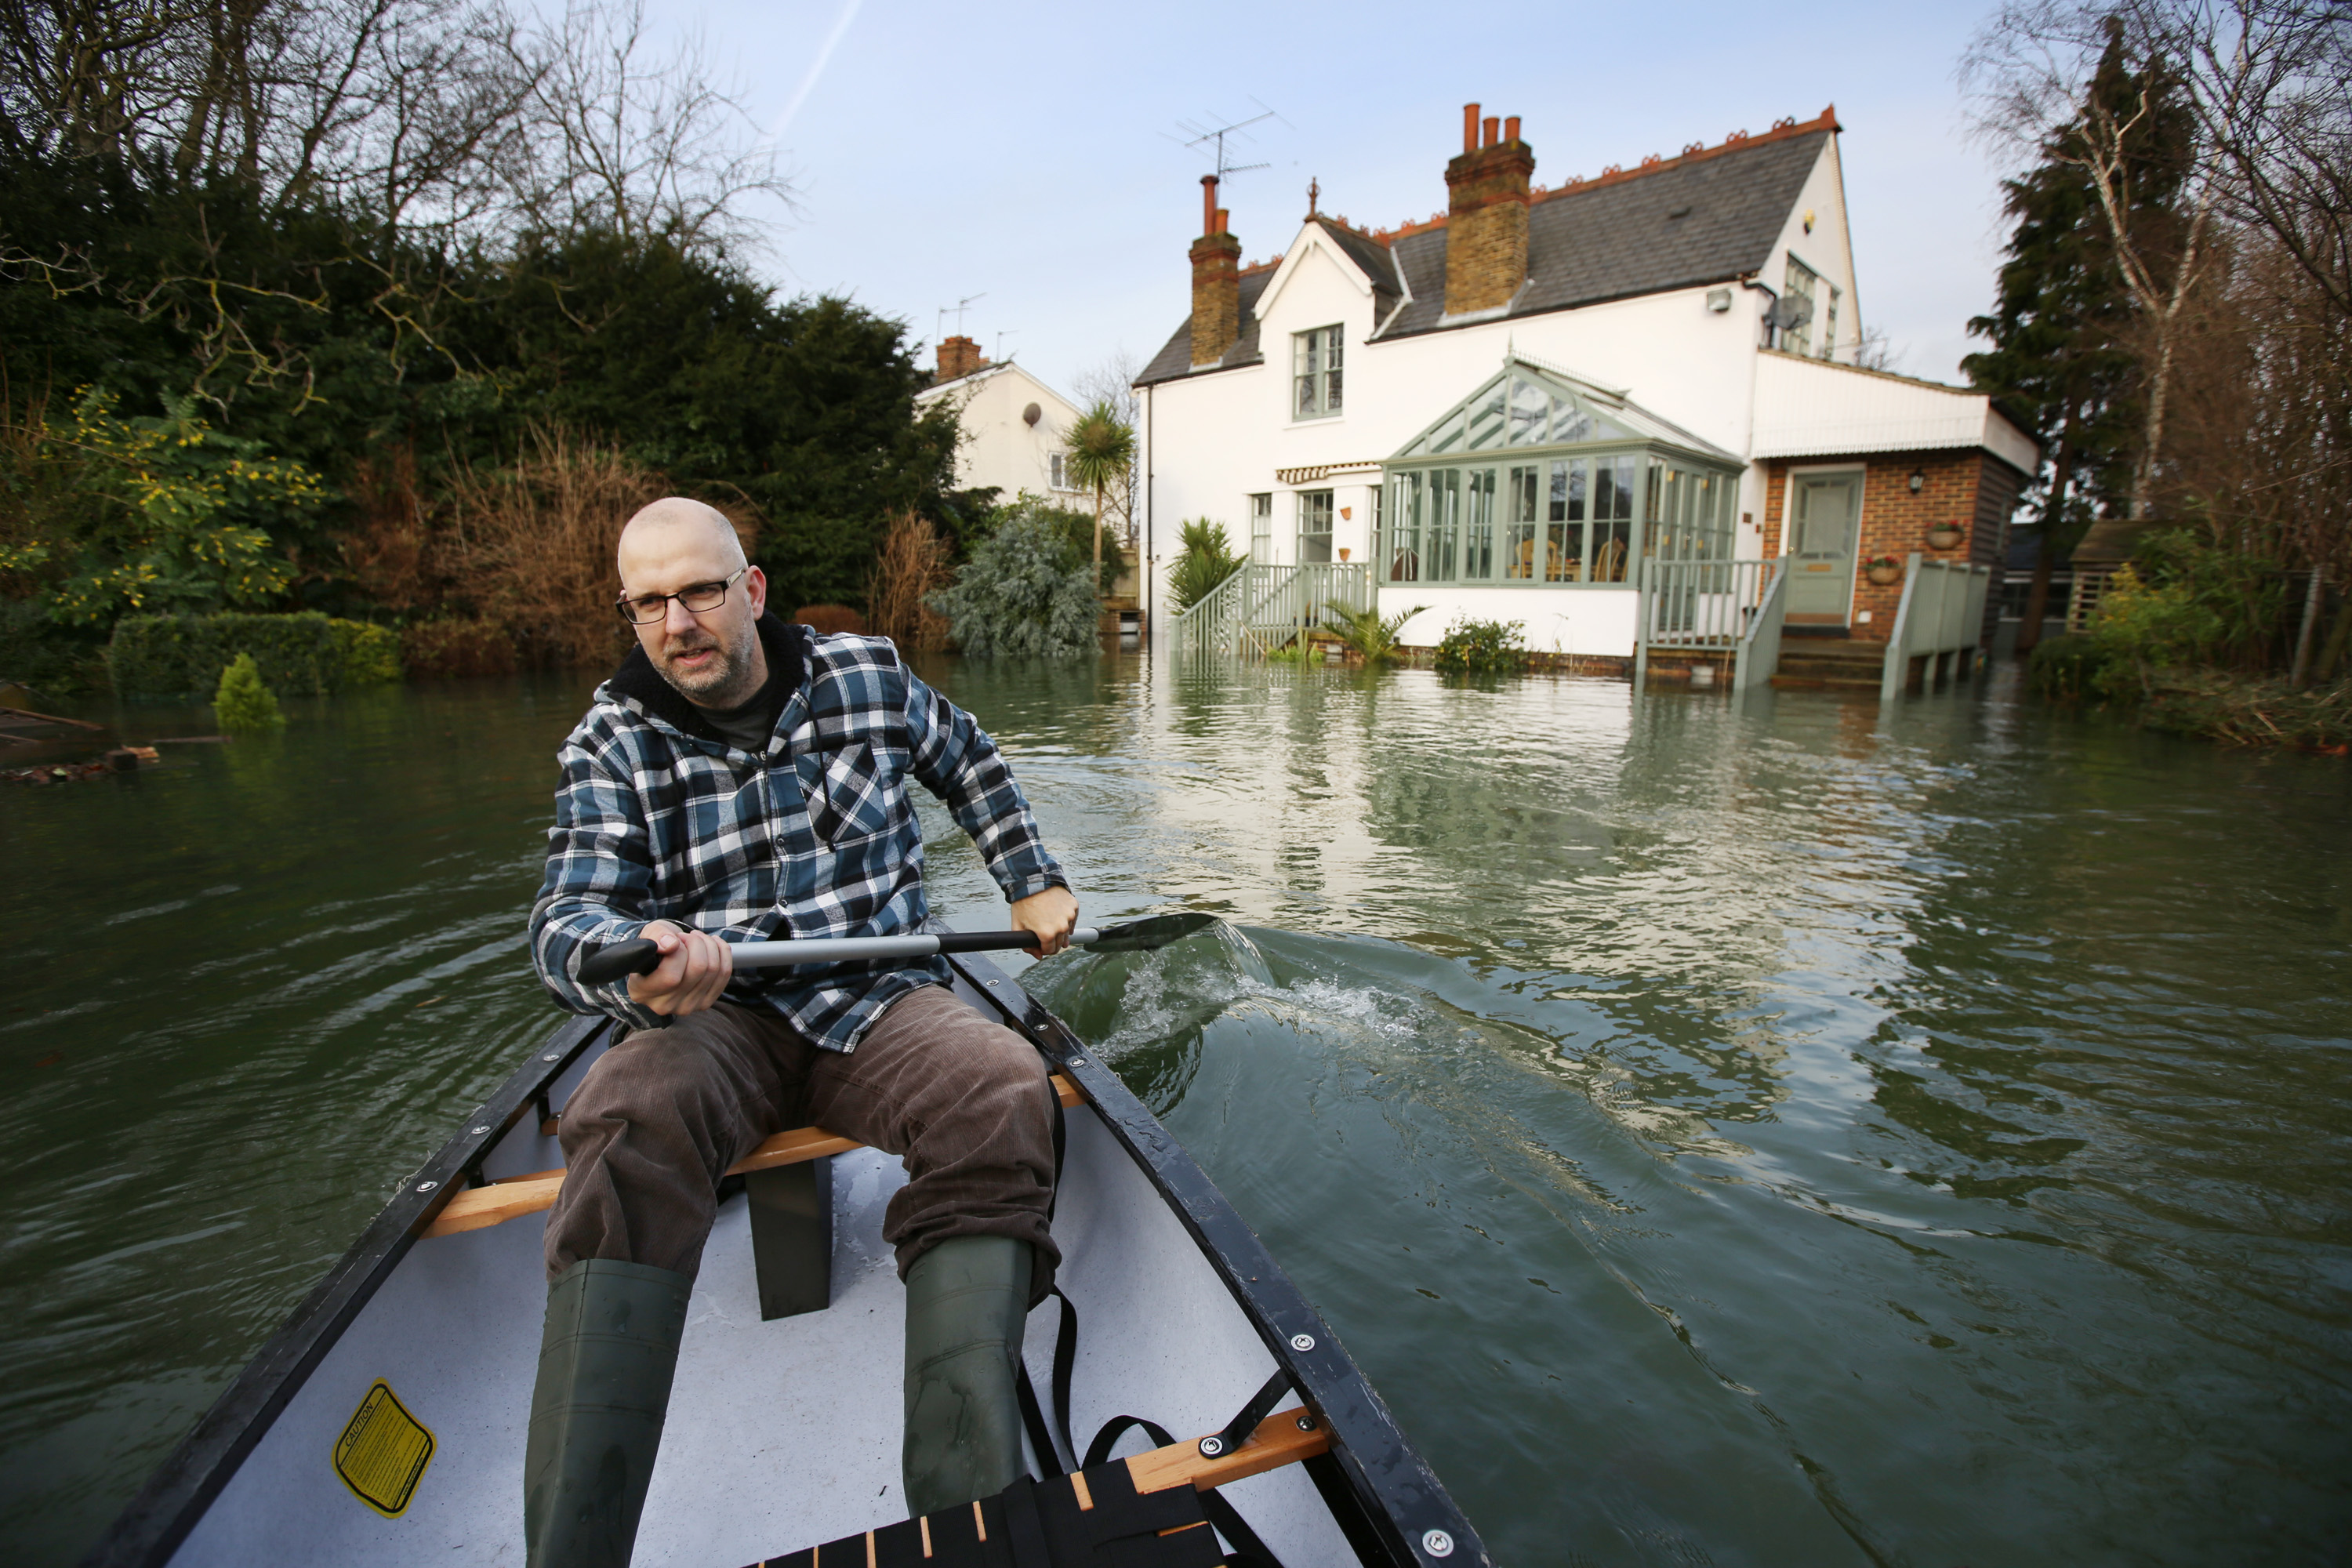 Ian Berry paddles a canoe through his front garden after the River Thames flooded on January 8, 2014 in Chersey, England.